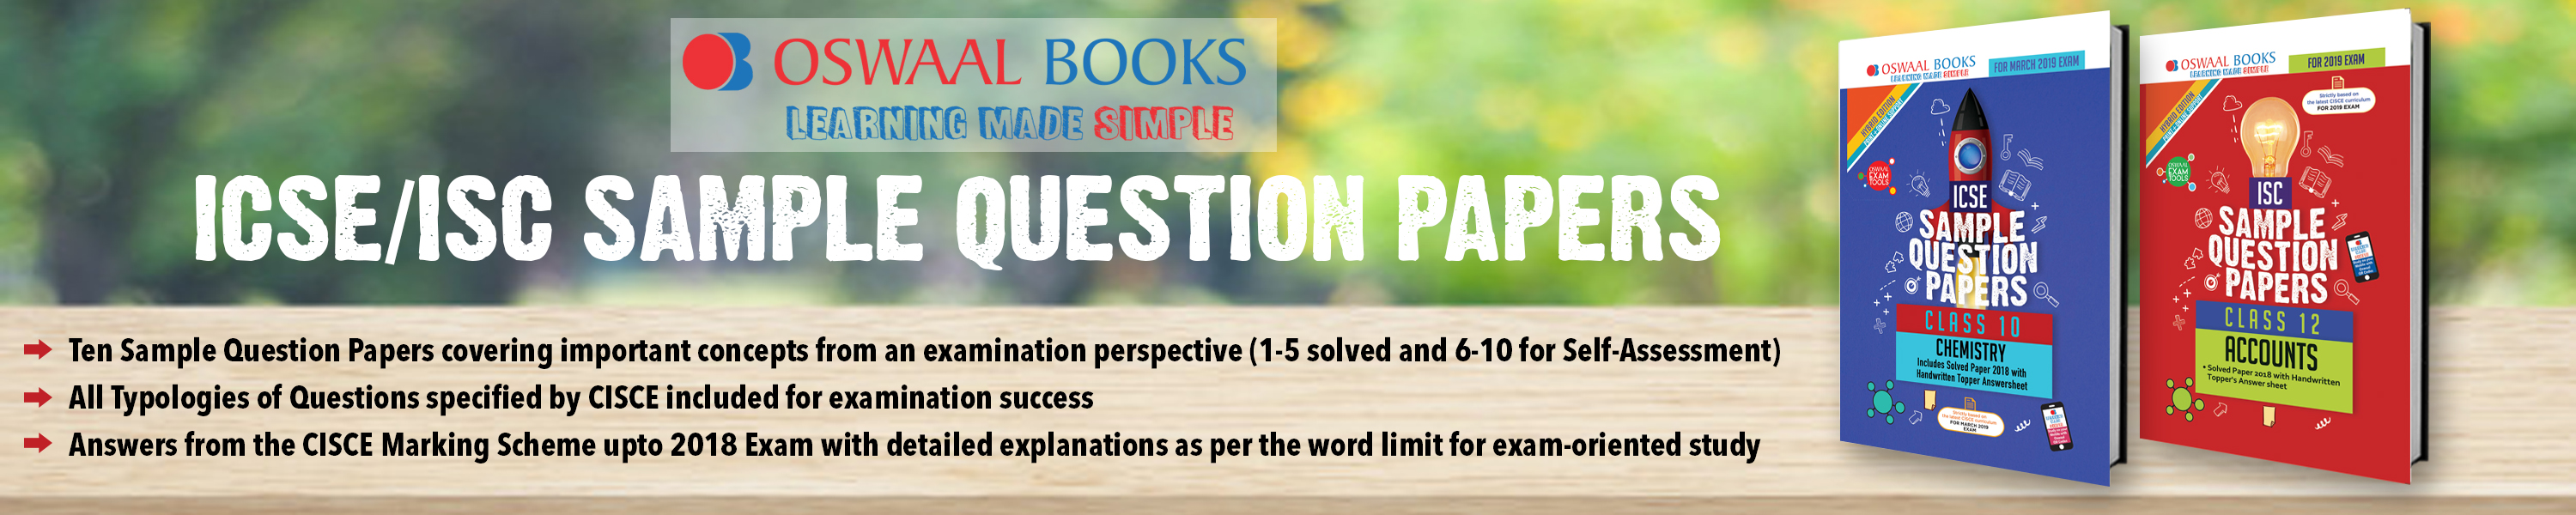 Amazon in: Oswaal Books: ISC-ICSE Sample Question Paper